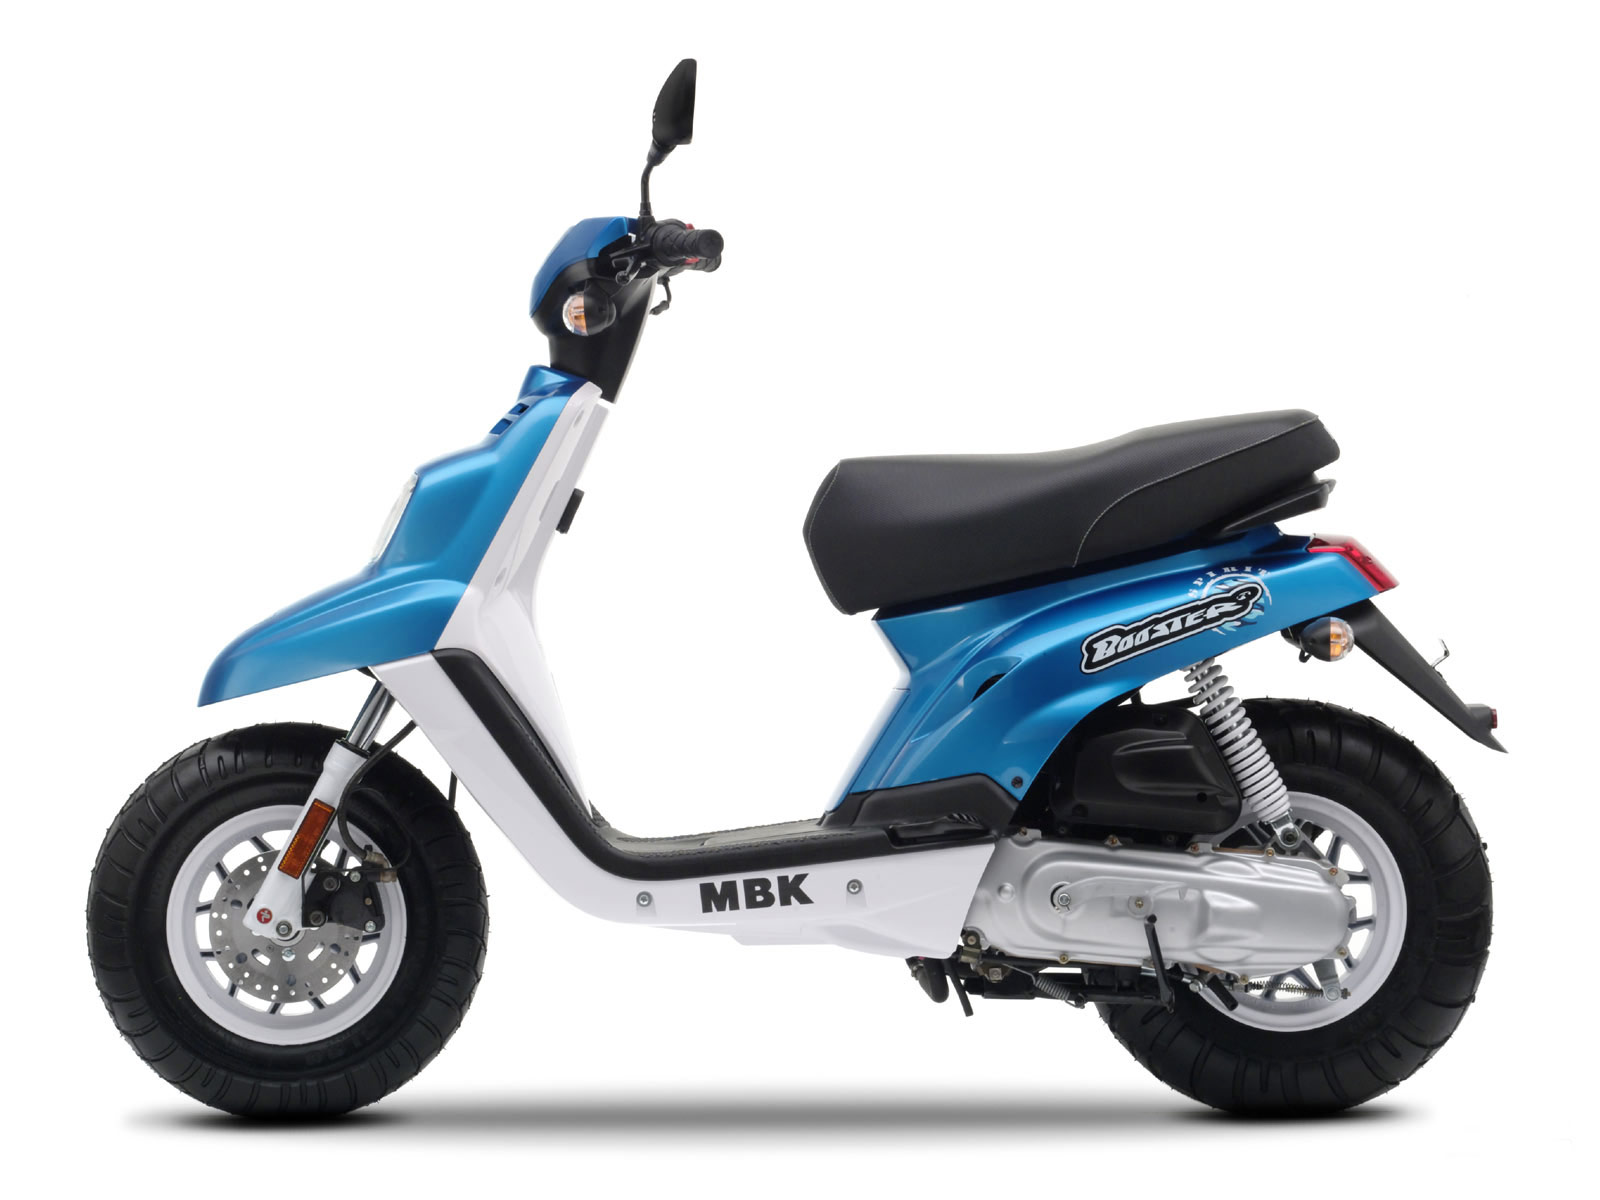 2008 mbk booster scooter picture insurance information. Black Bedroom Furniture Sets. Home Design Ideas